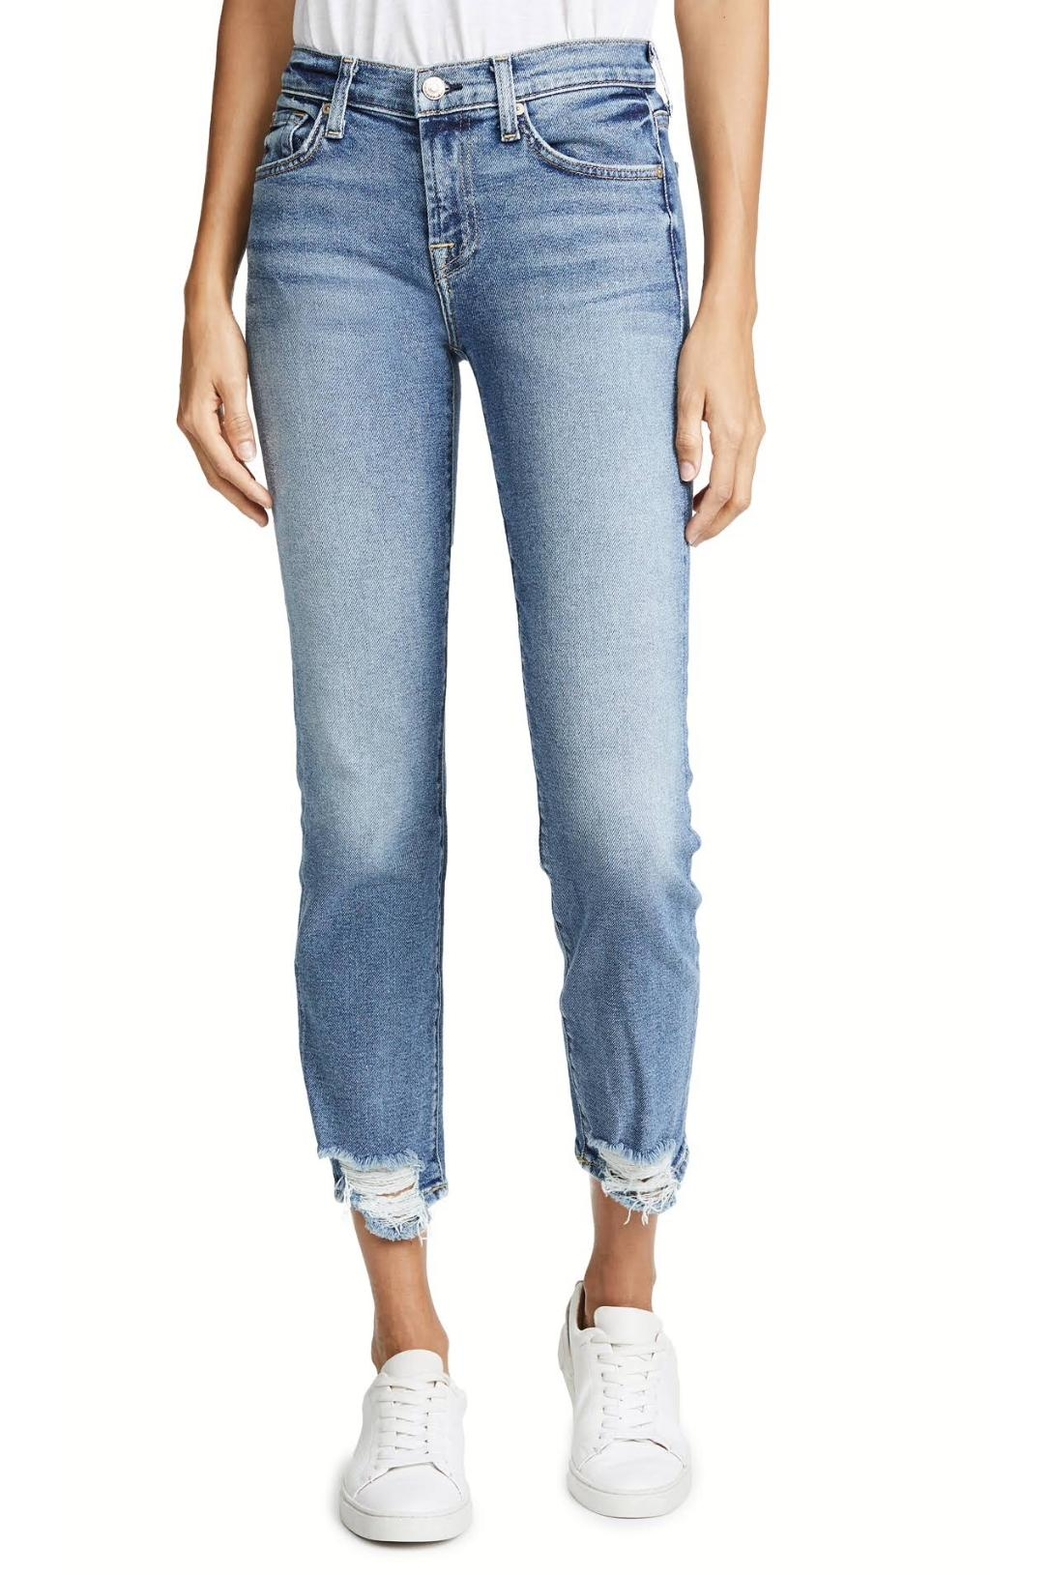 7 For all Mankind Roxanne Ankle Skinny - Main Image